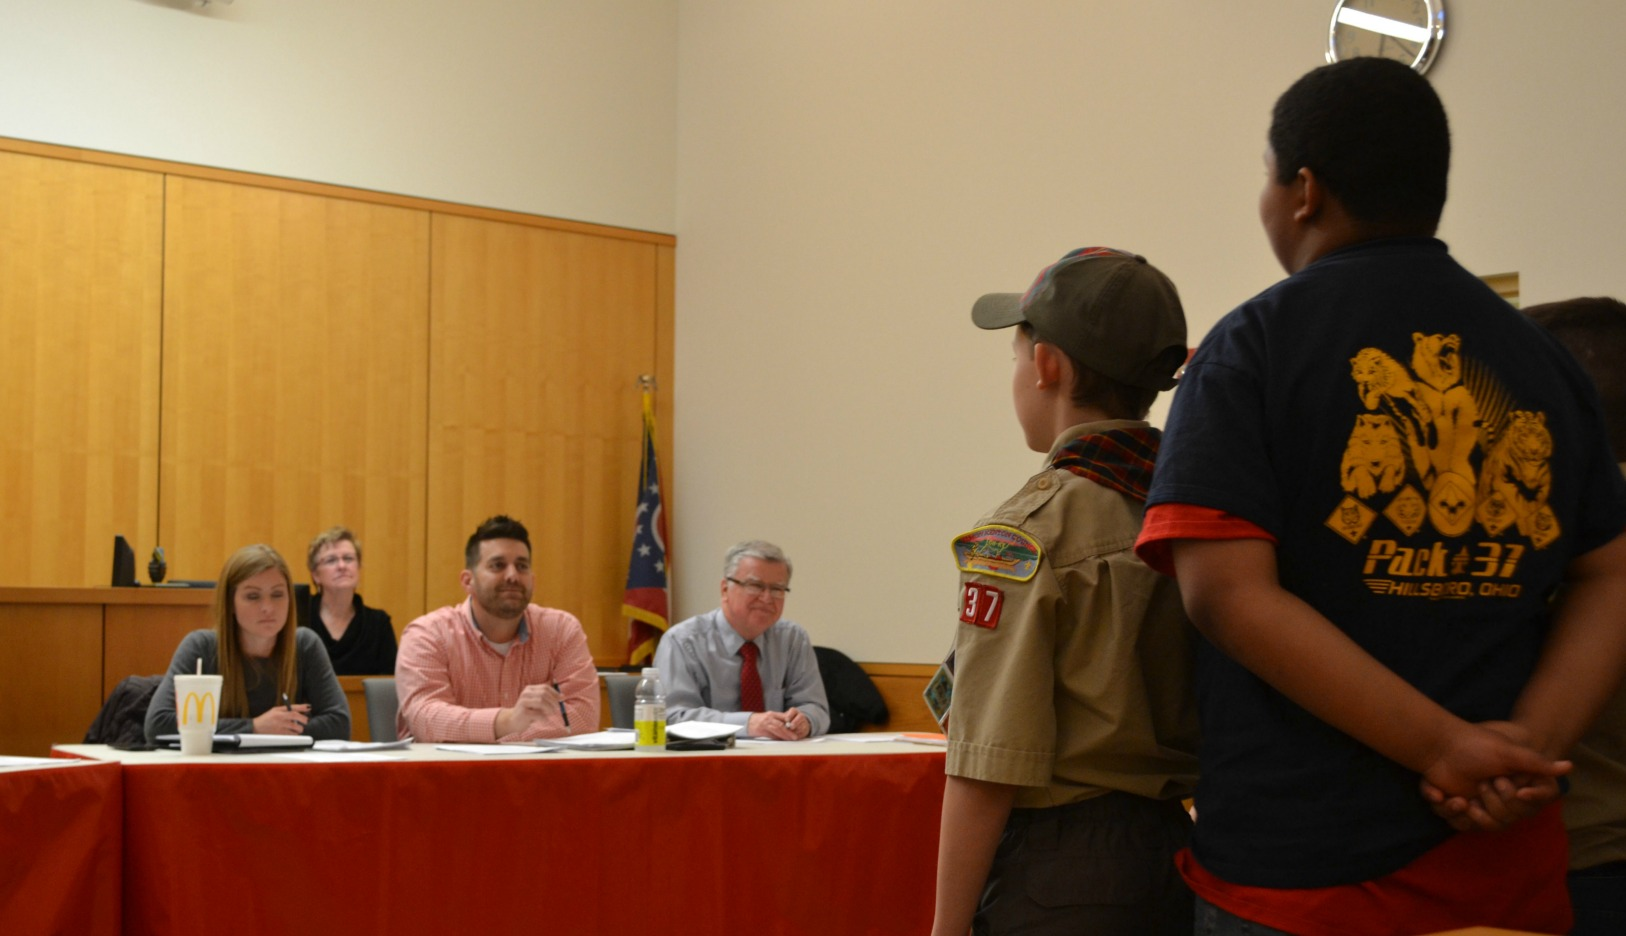 From left: Council member Rebecca Wilkin, clerk Debbie Sansone and council members Justin Harsha and Bill Alexander listen to a request by local Cub Scouts. (HCP Photo/Caitlin Forsha)